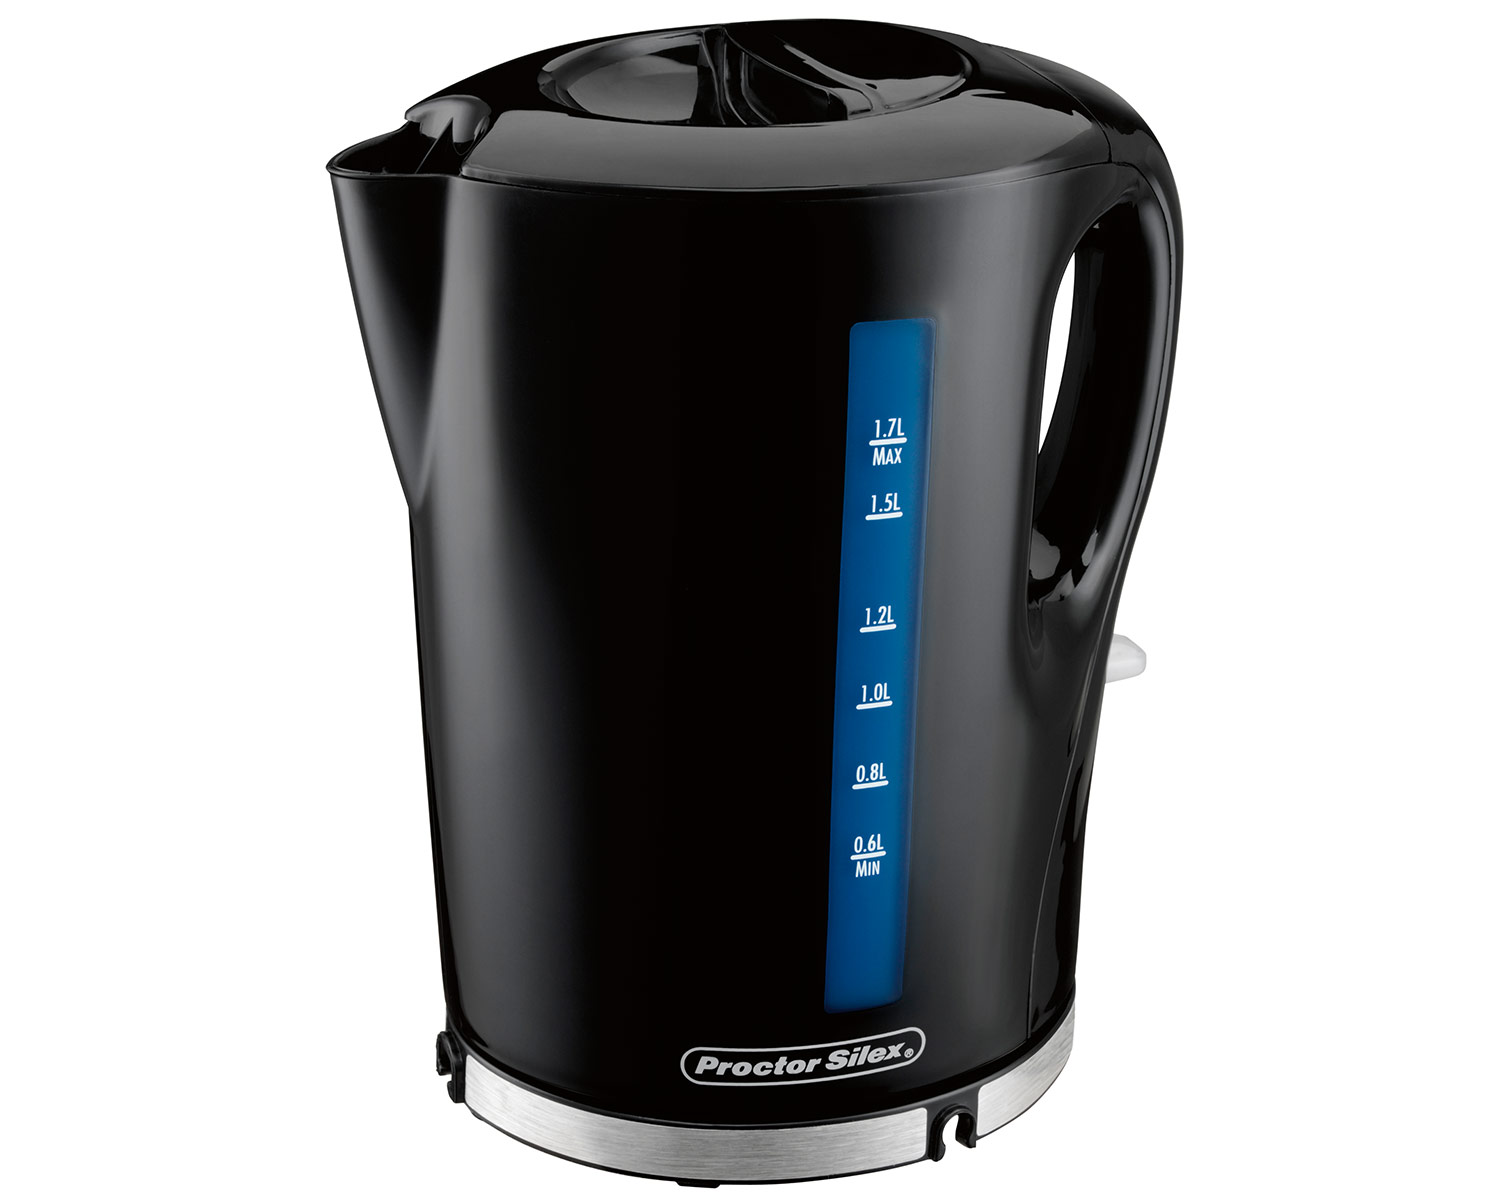 Cordless Electric Kettle (black)-41002 Small Size